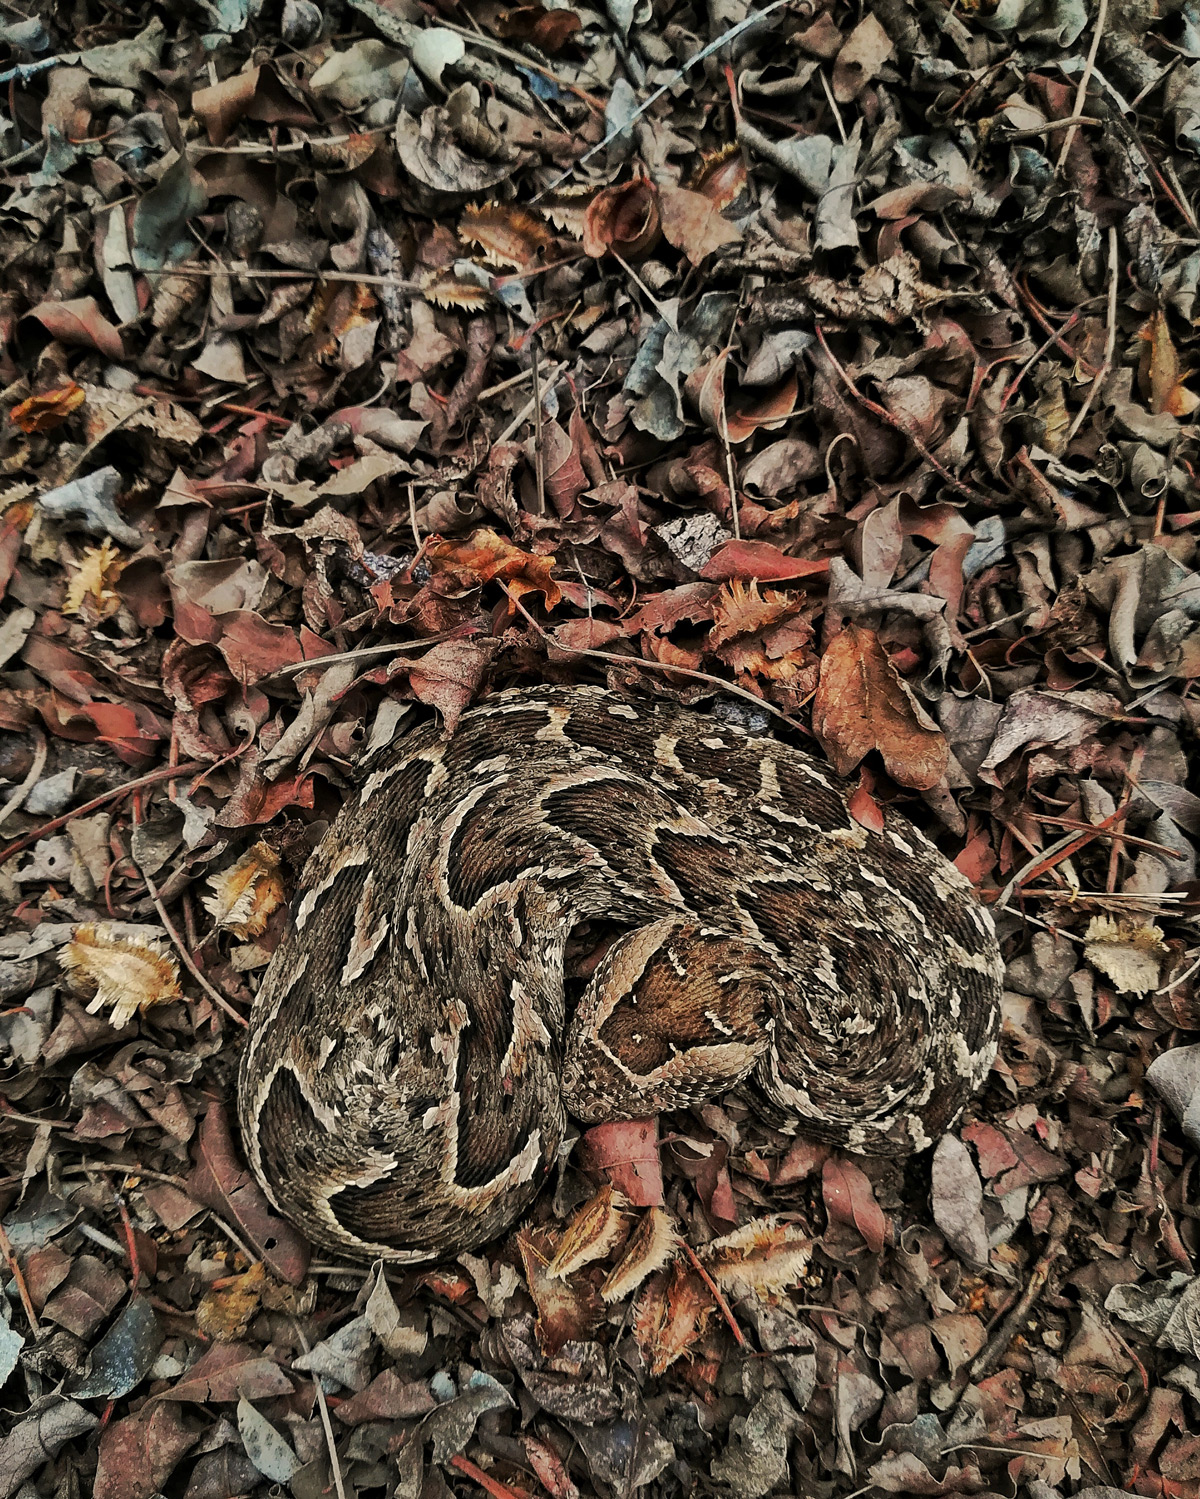 """Master of camouflage"" – a puff adder in Kruger National Park, South Africa © Theo Busschau"